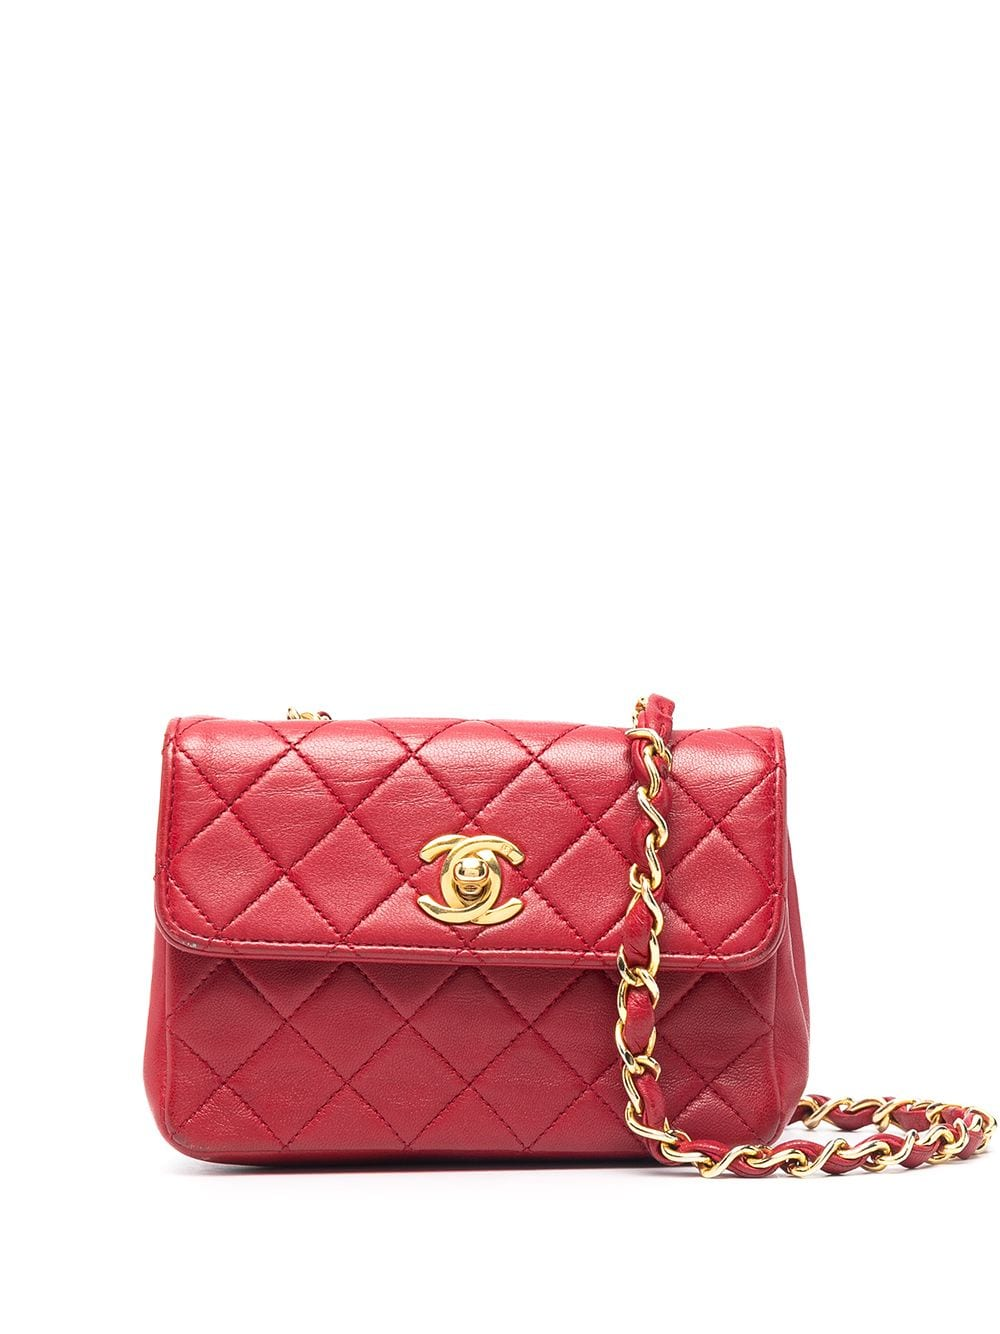 Chanel Pre-Owned 1989-1991 Mini Umhängetasche - Rot